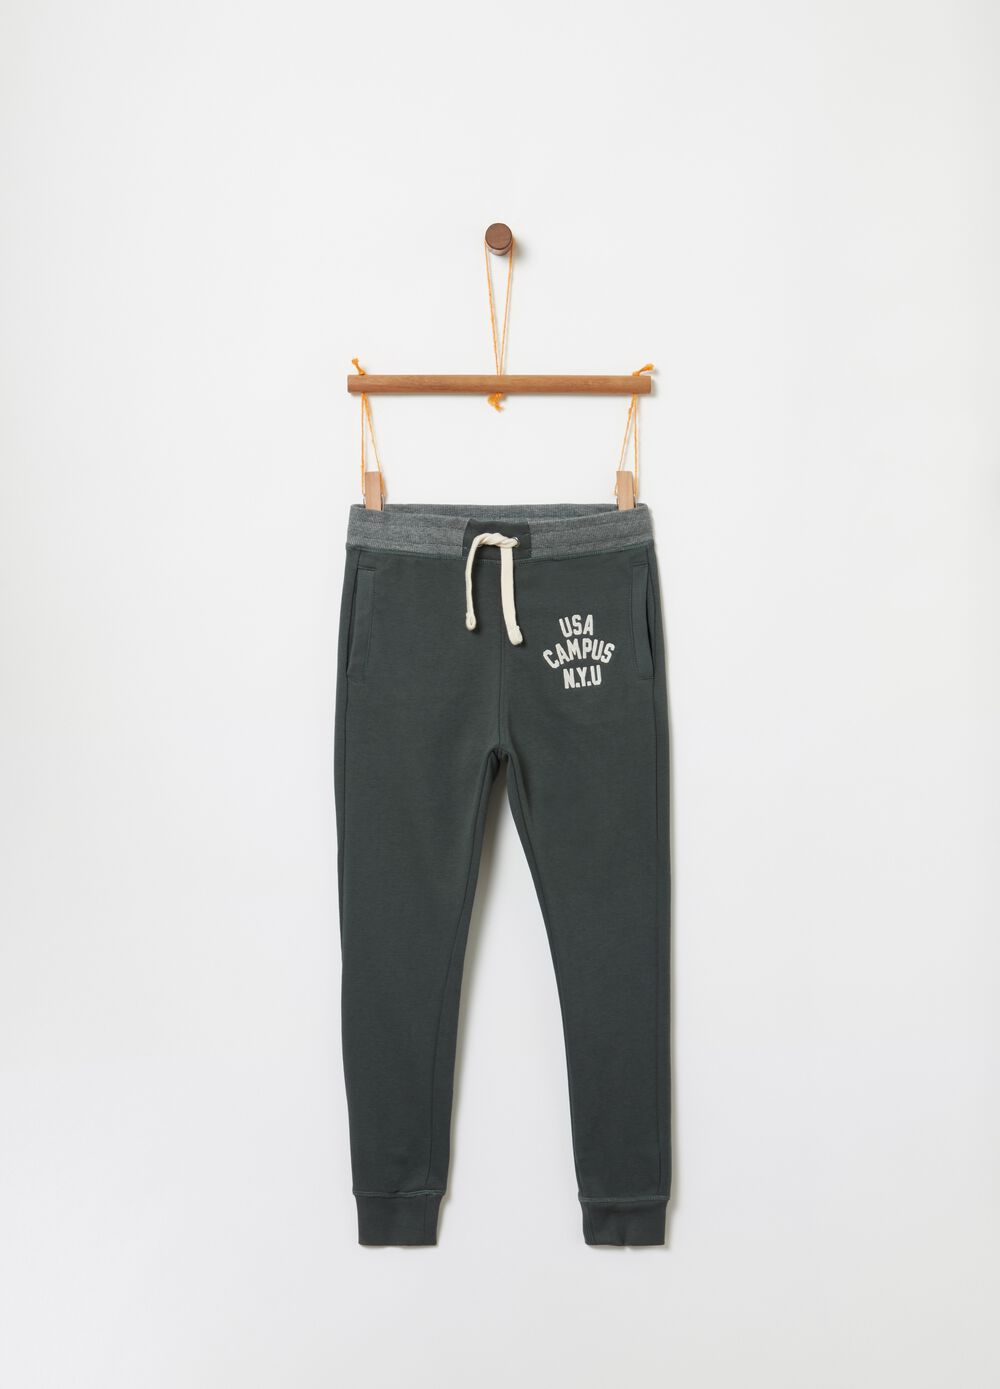 Trousers in 100% cotton fleece with print